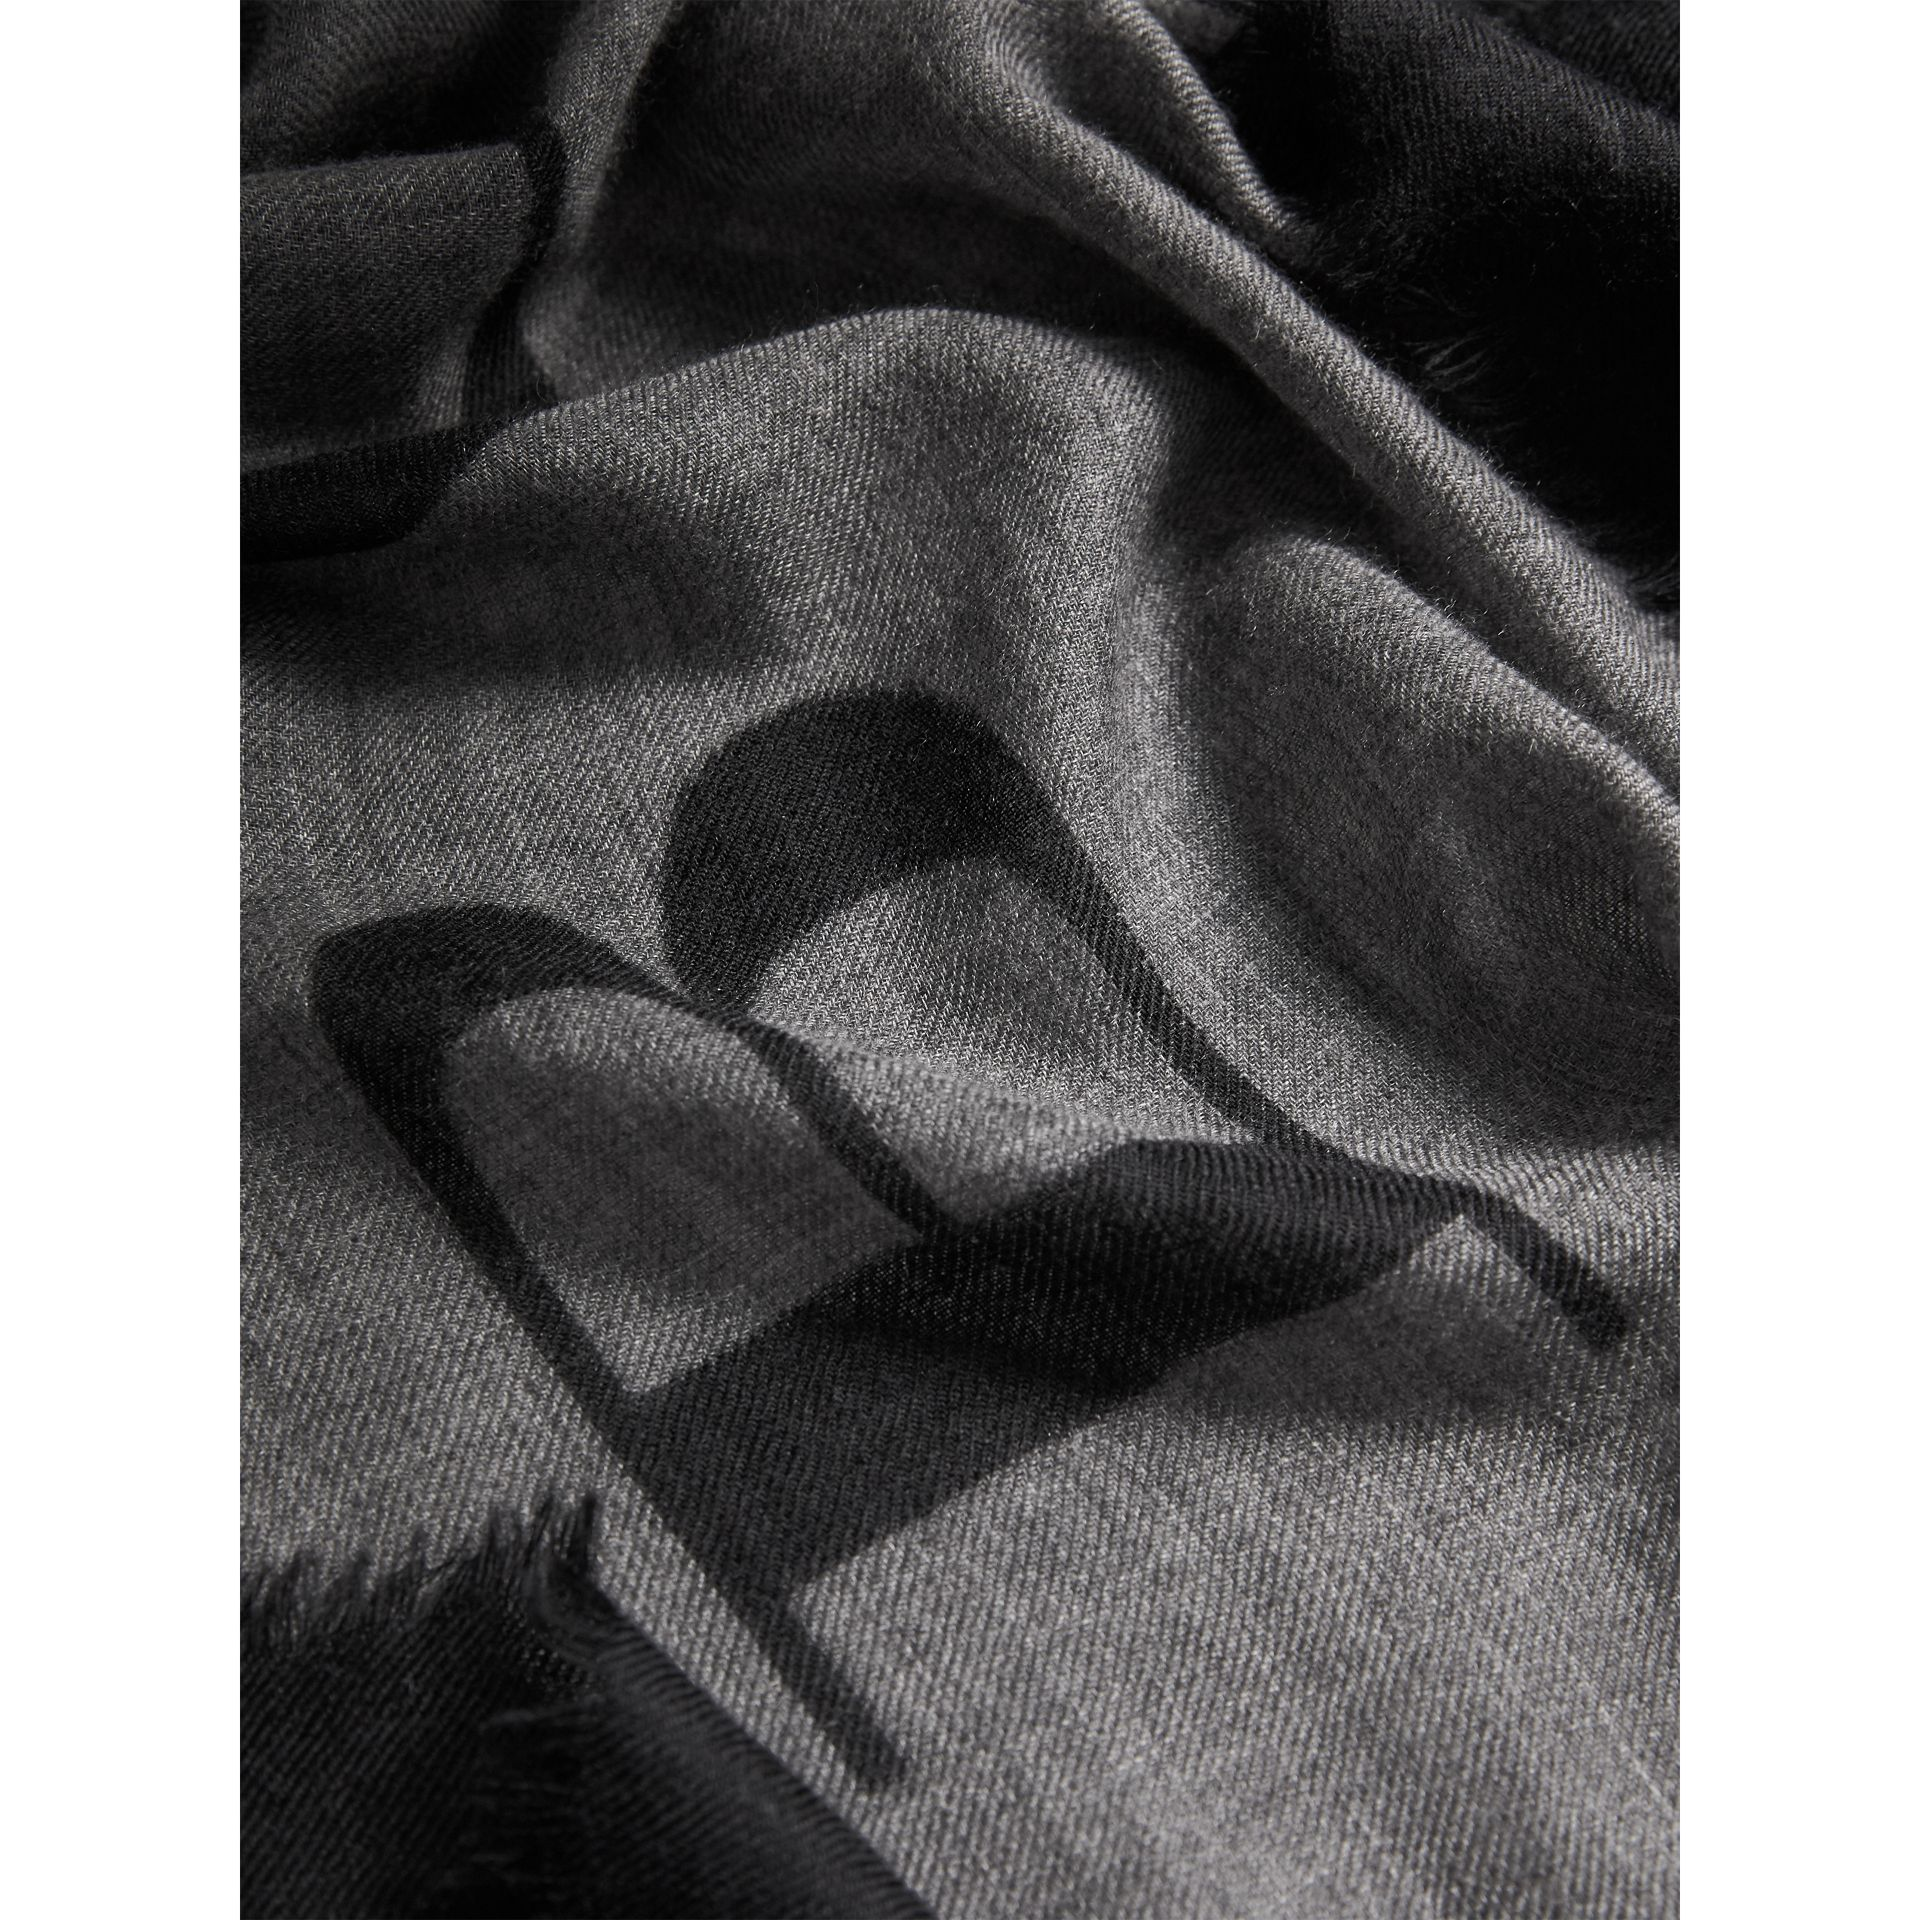 Graphic Print Motif  Lightweight Cashmere Scarf in Mid Grey | Burberry - gallery image 1